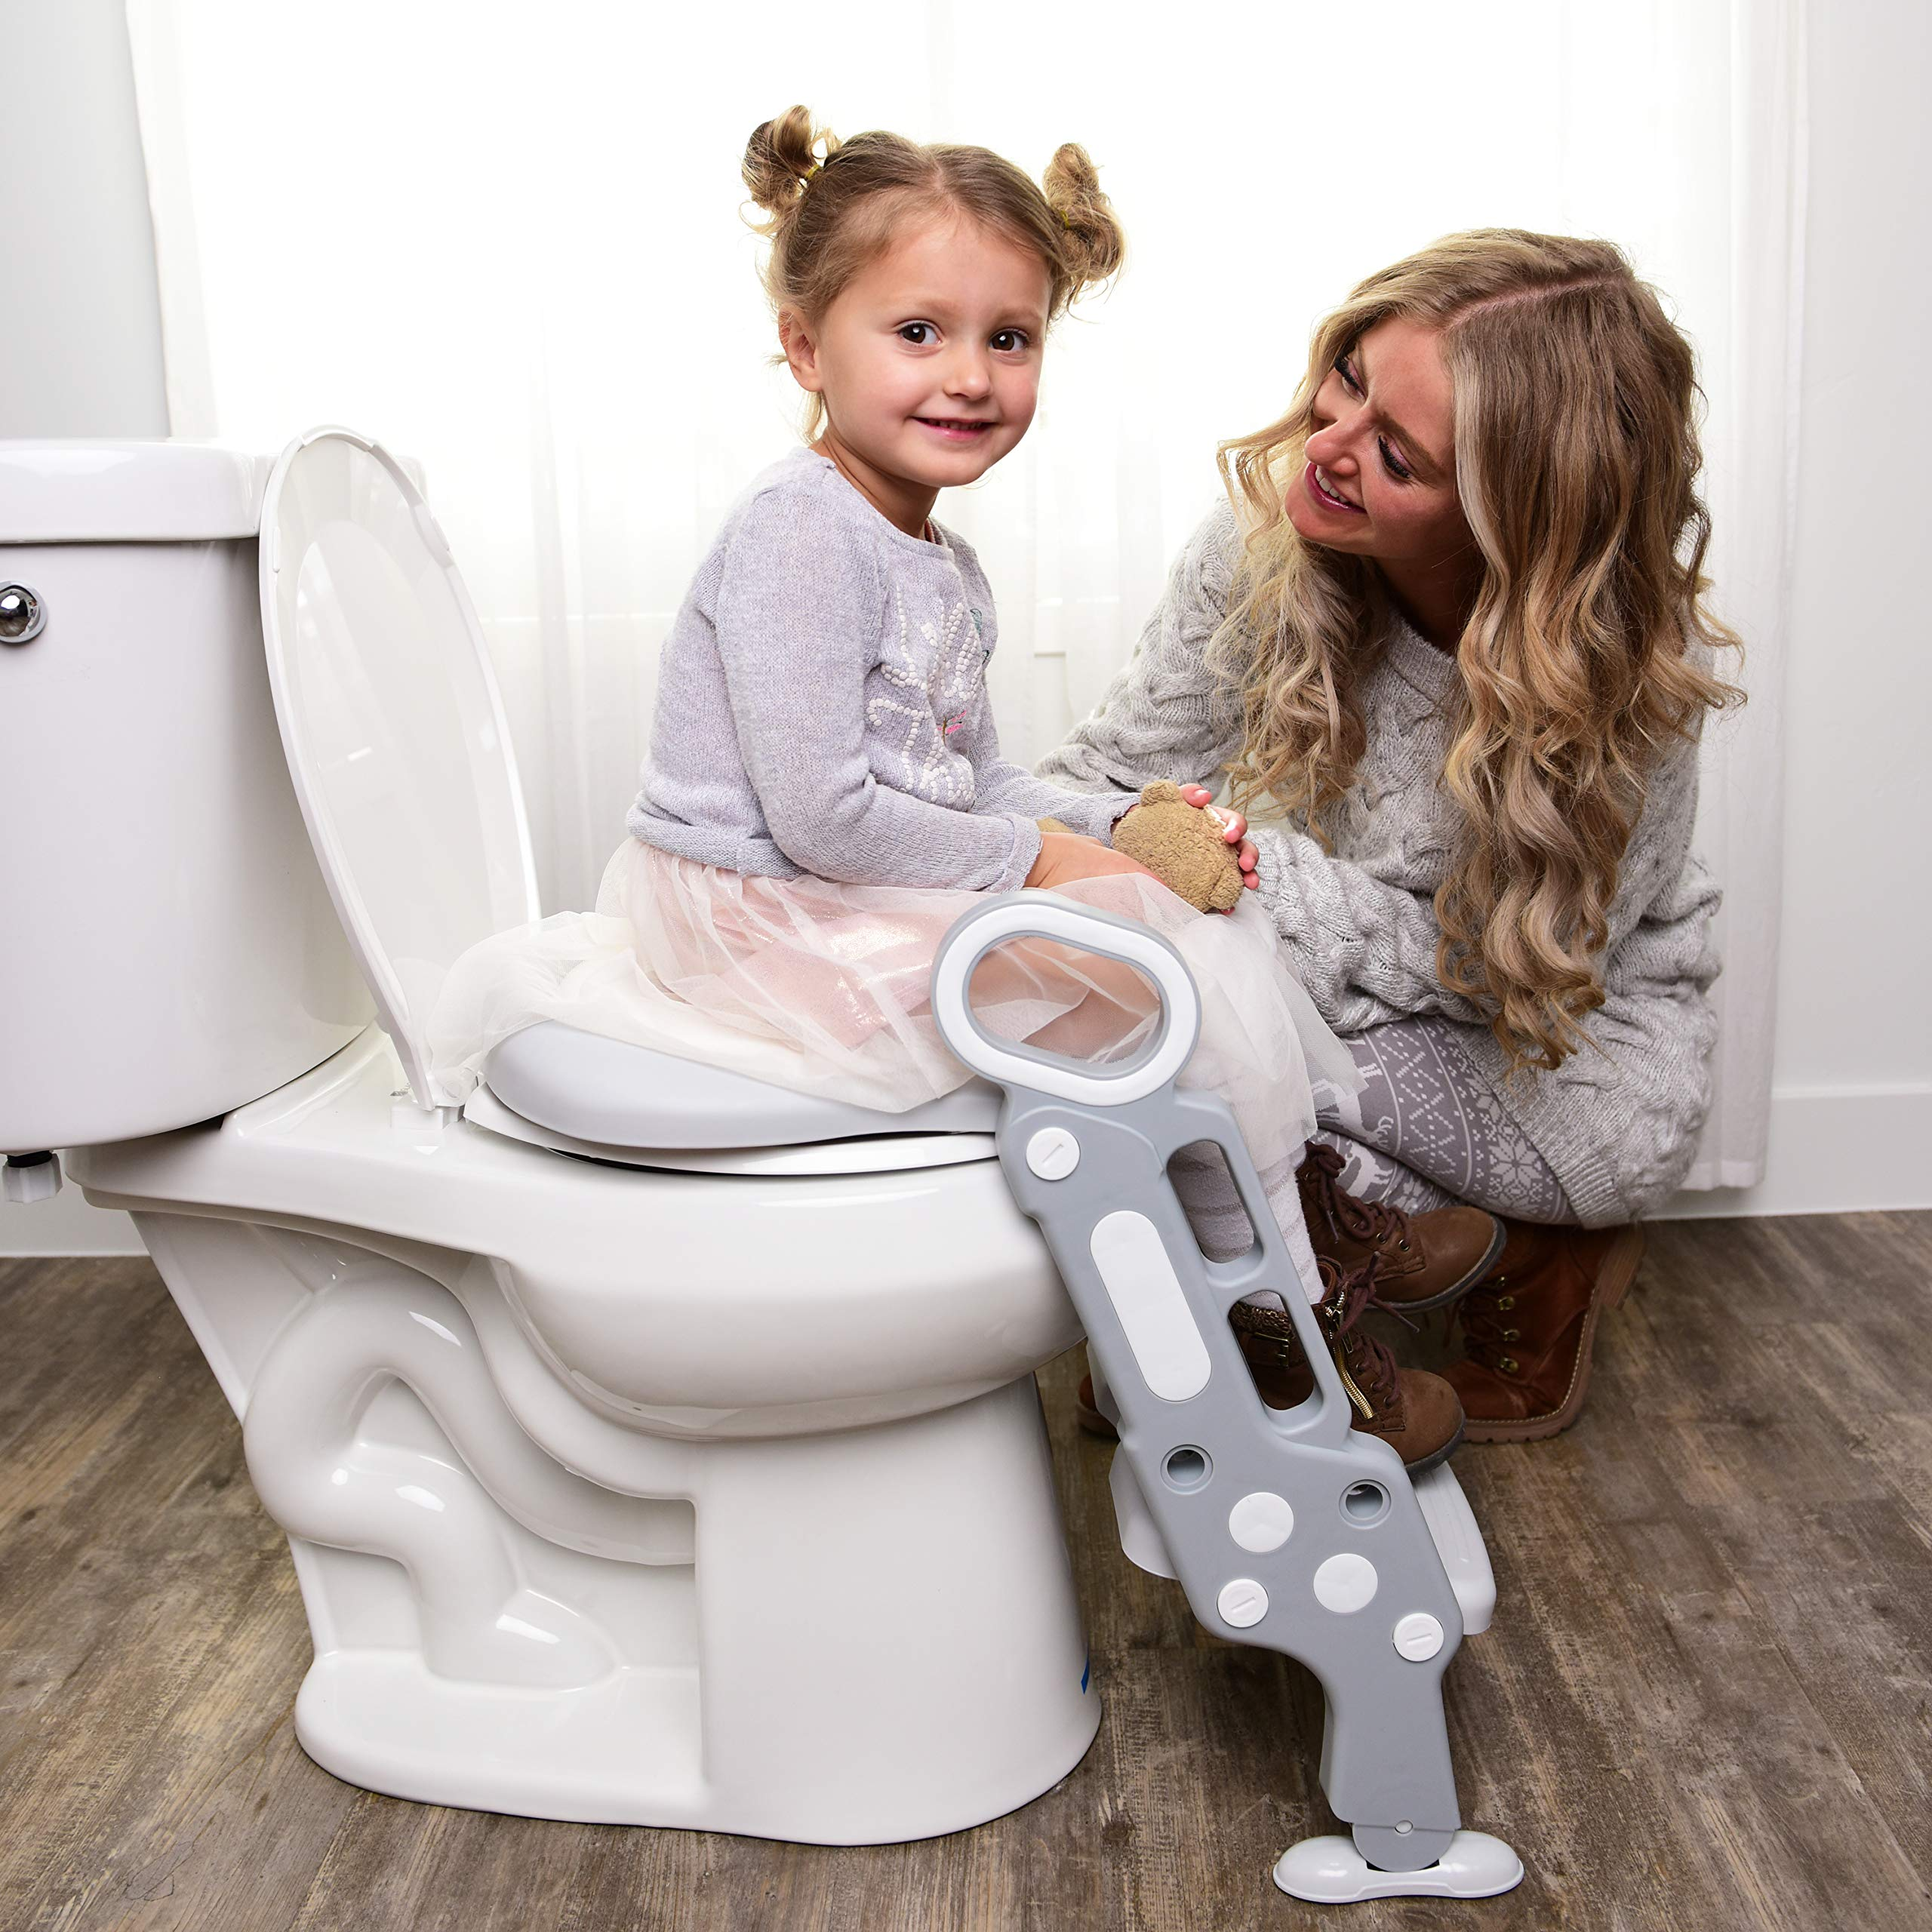 Potty Toilet Training Seat -Adjustable Ladder Baby Bathroom Training Chair Cover For Toilet With Step Stool & Handles-Foldable Kids Potty Trainer Seat For Boys & Girls- Easy Assembly & Discreet Design